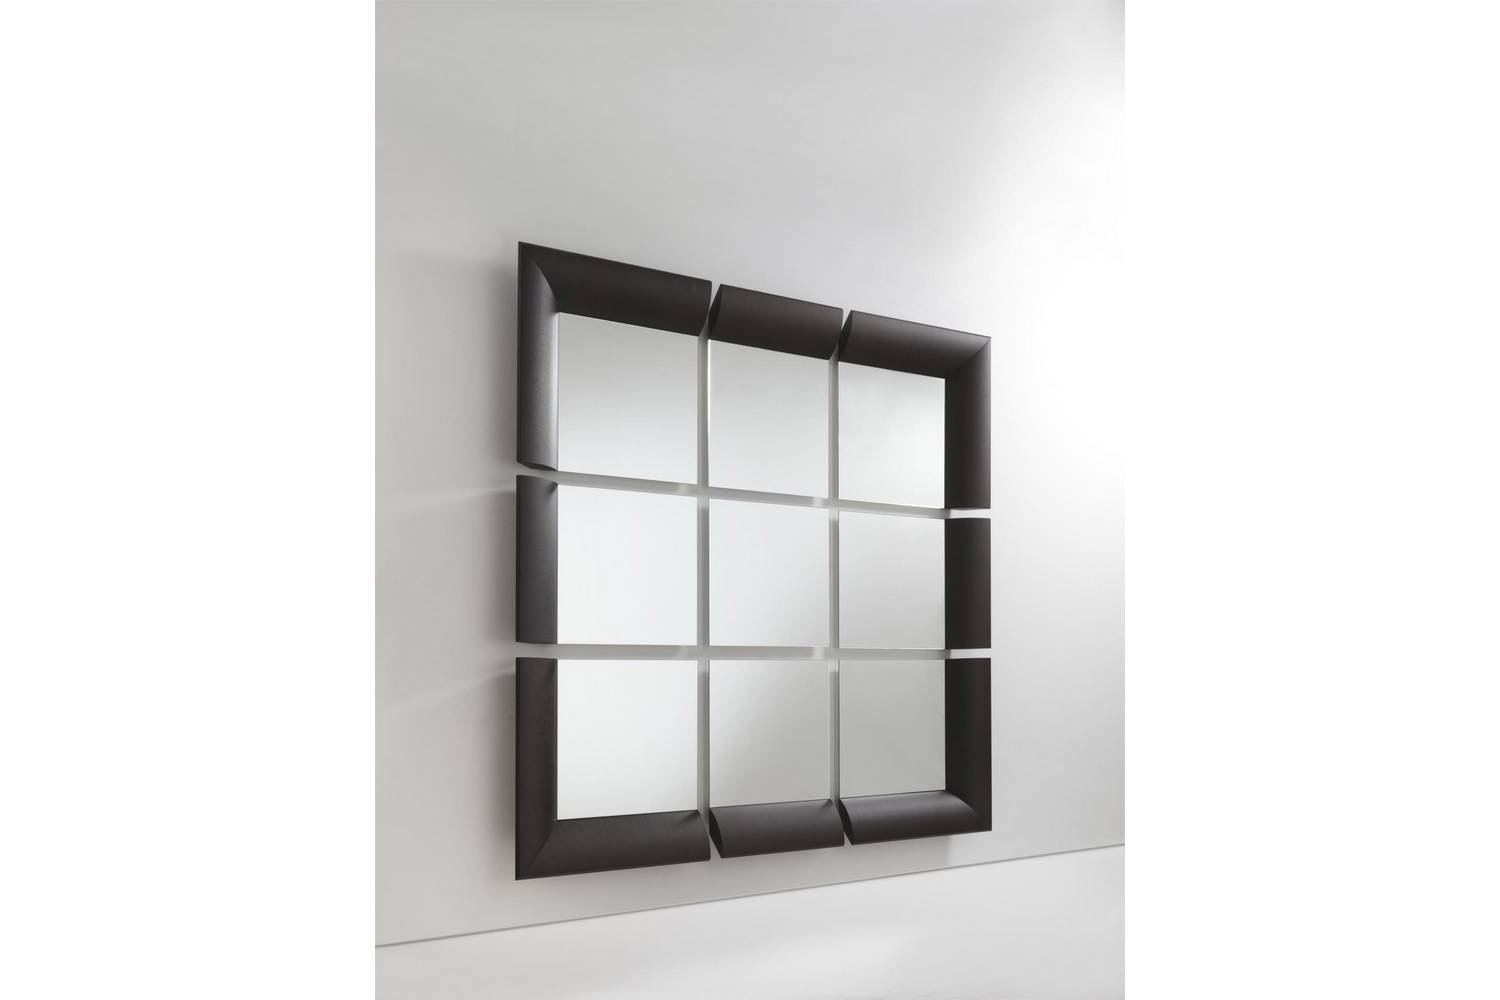 Triple Mirror by T. Colzani for Porada